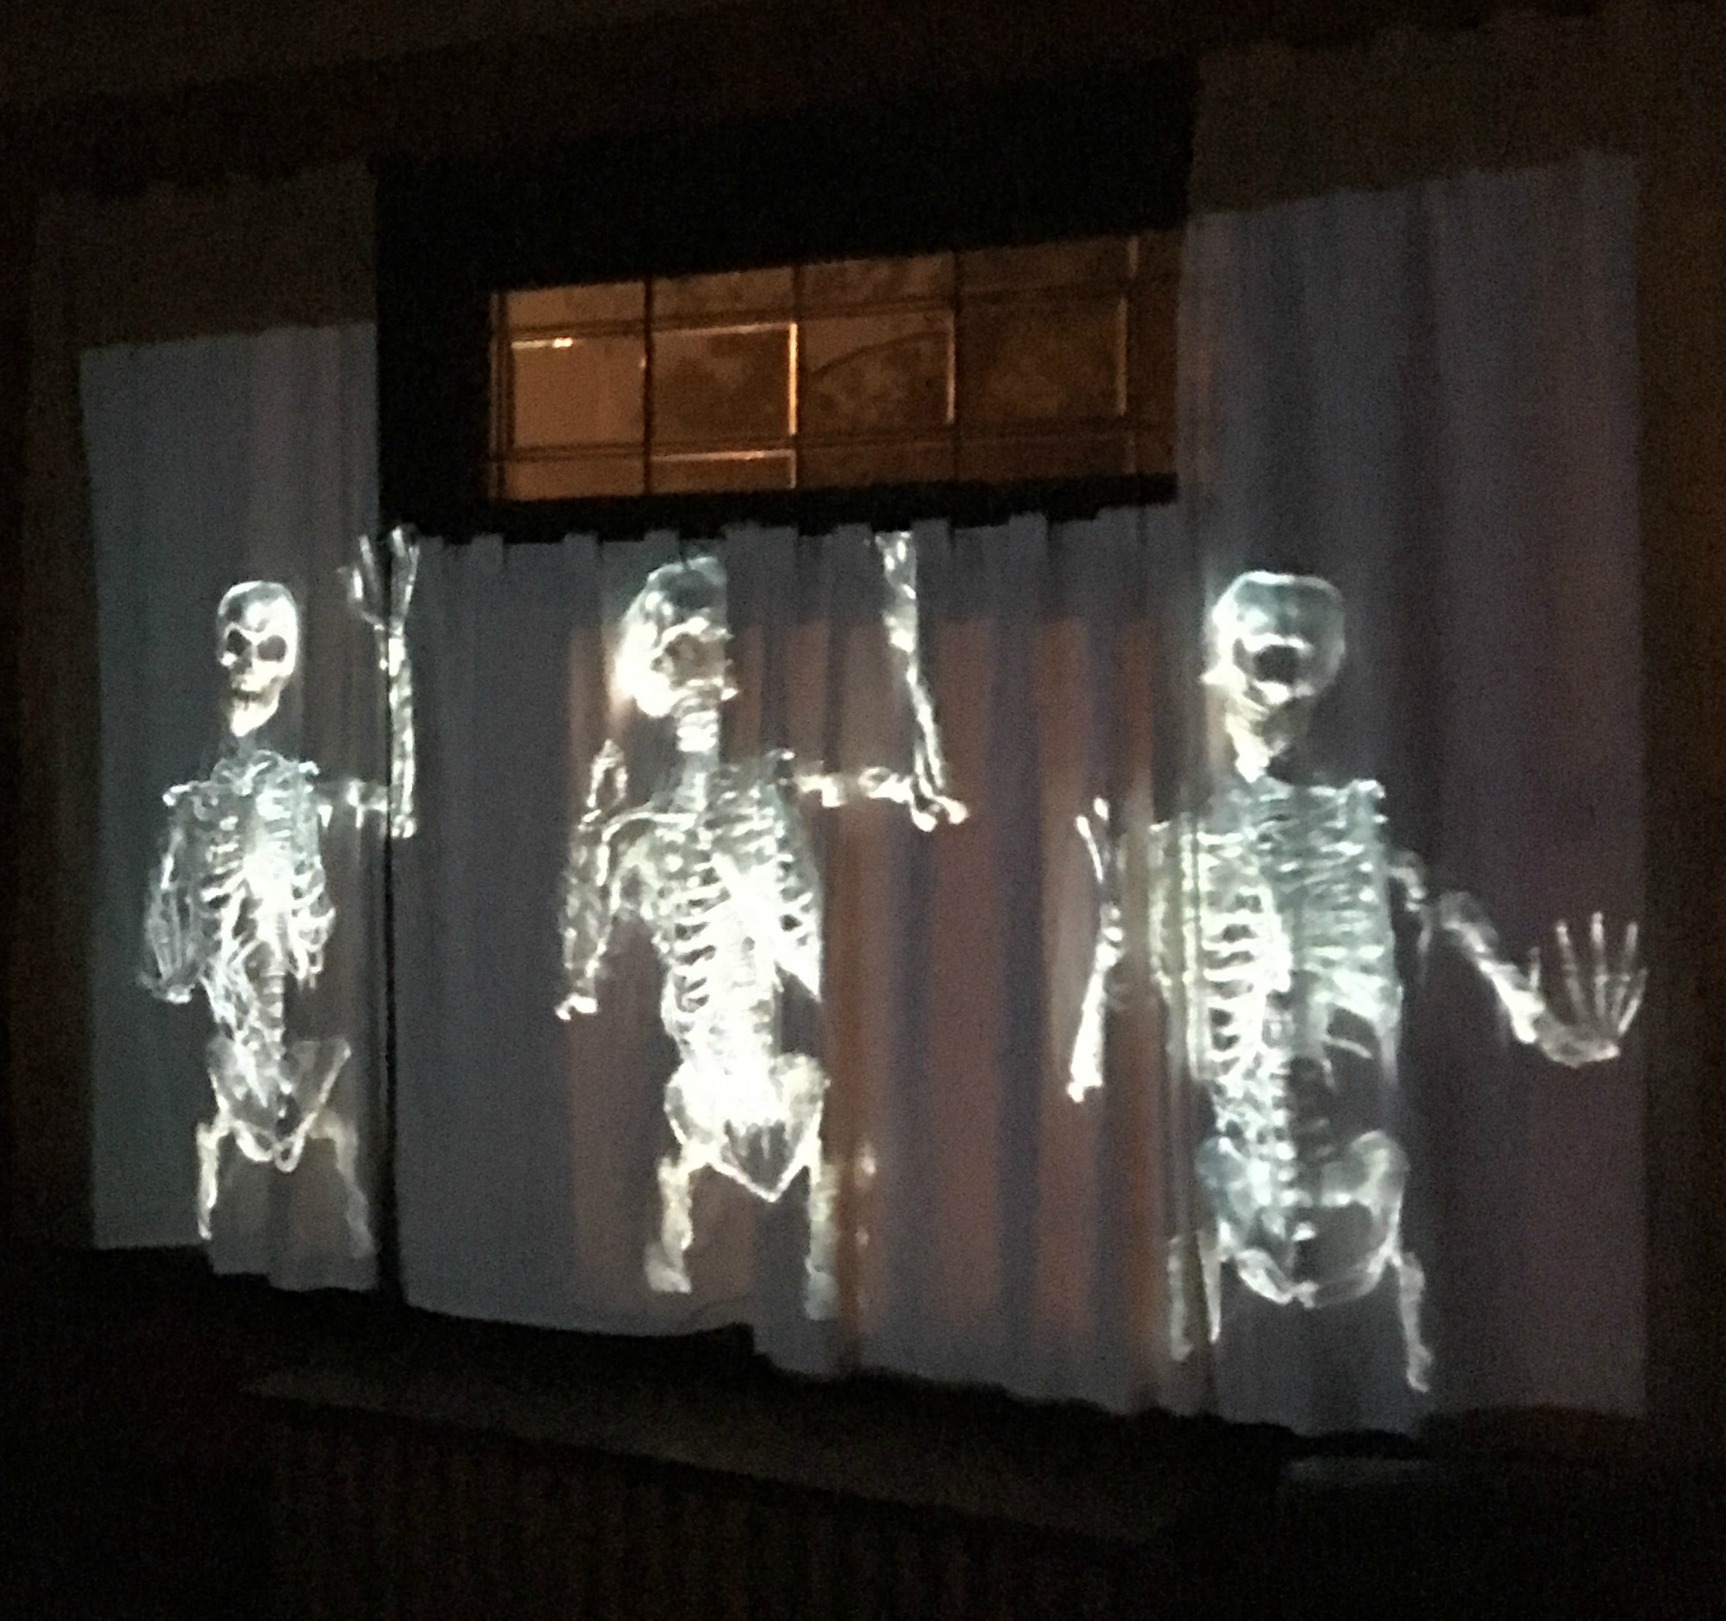 Digital projections are the way to go